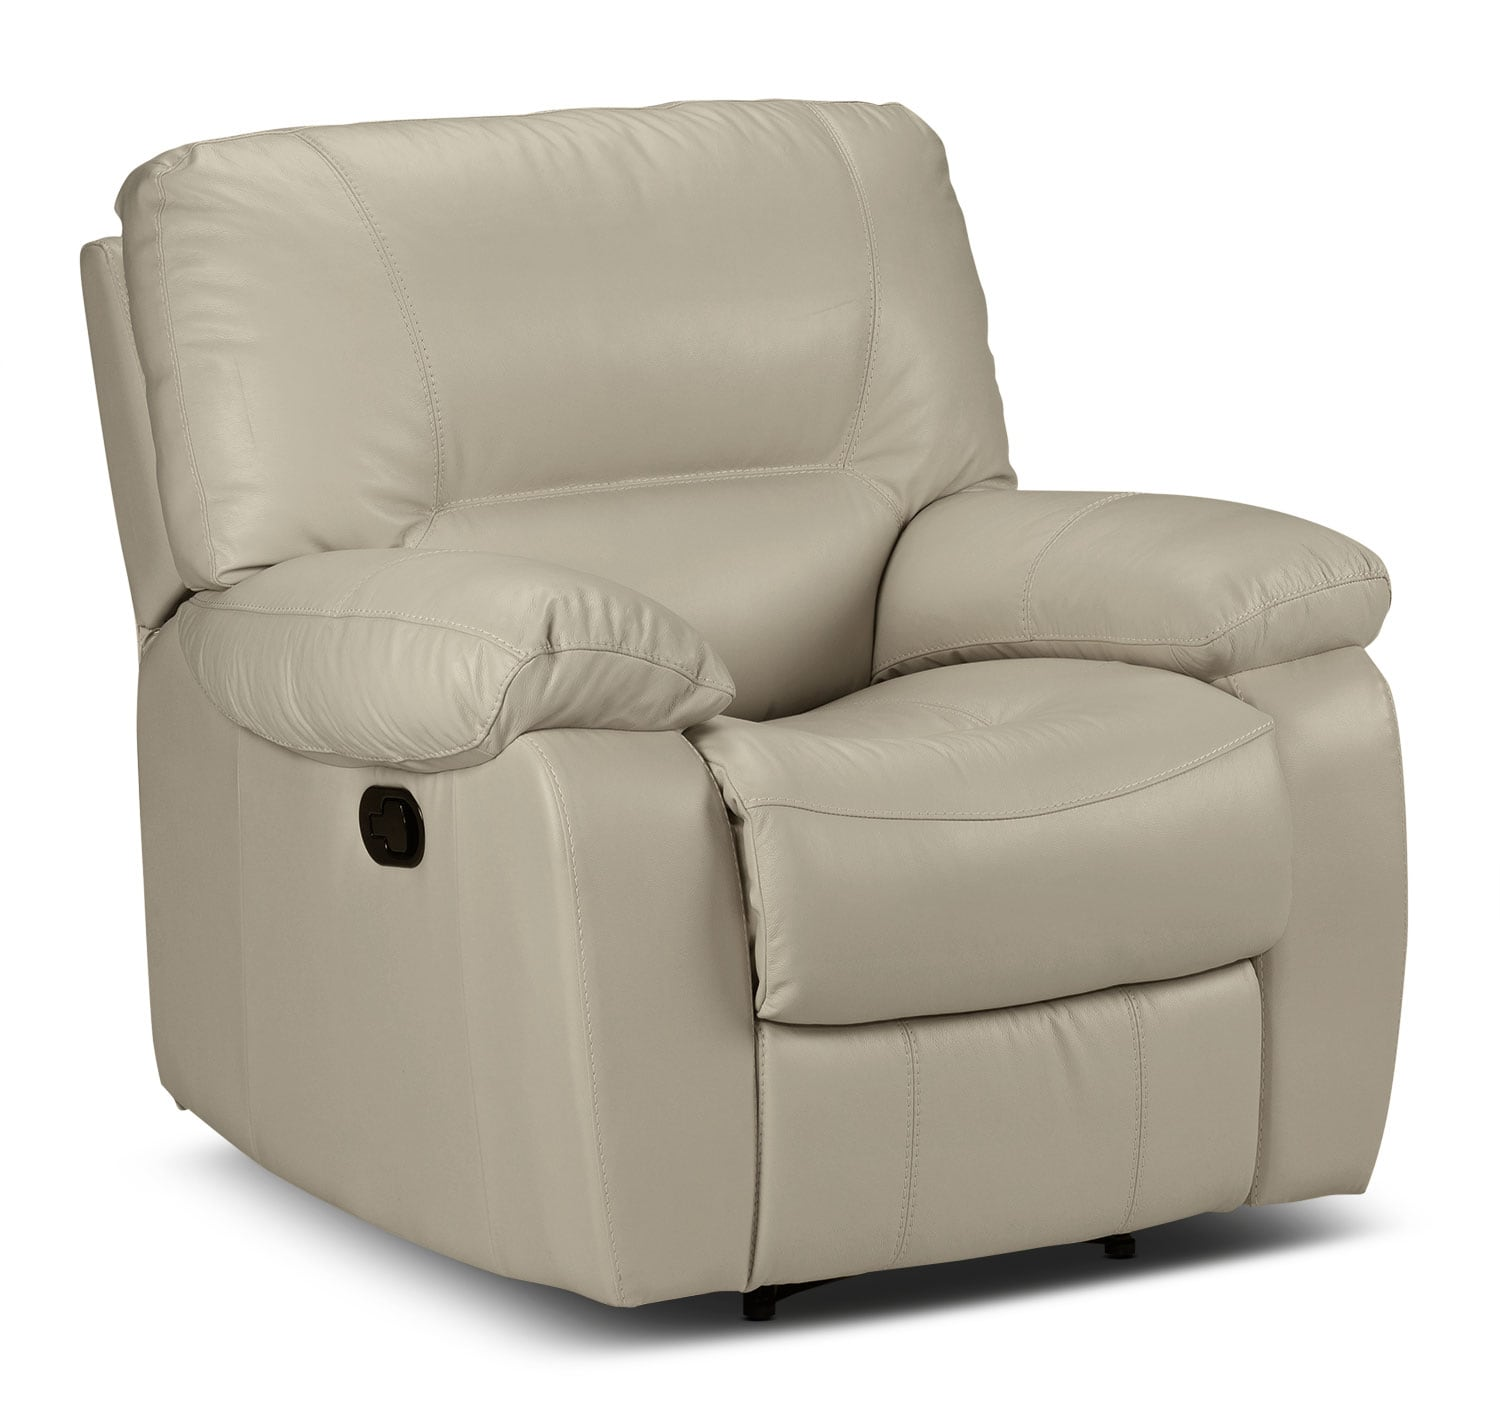 Piermont Recliner - Silver Grey